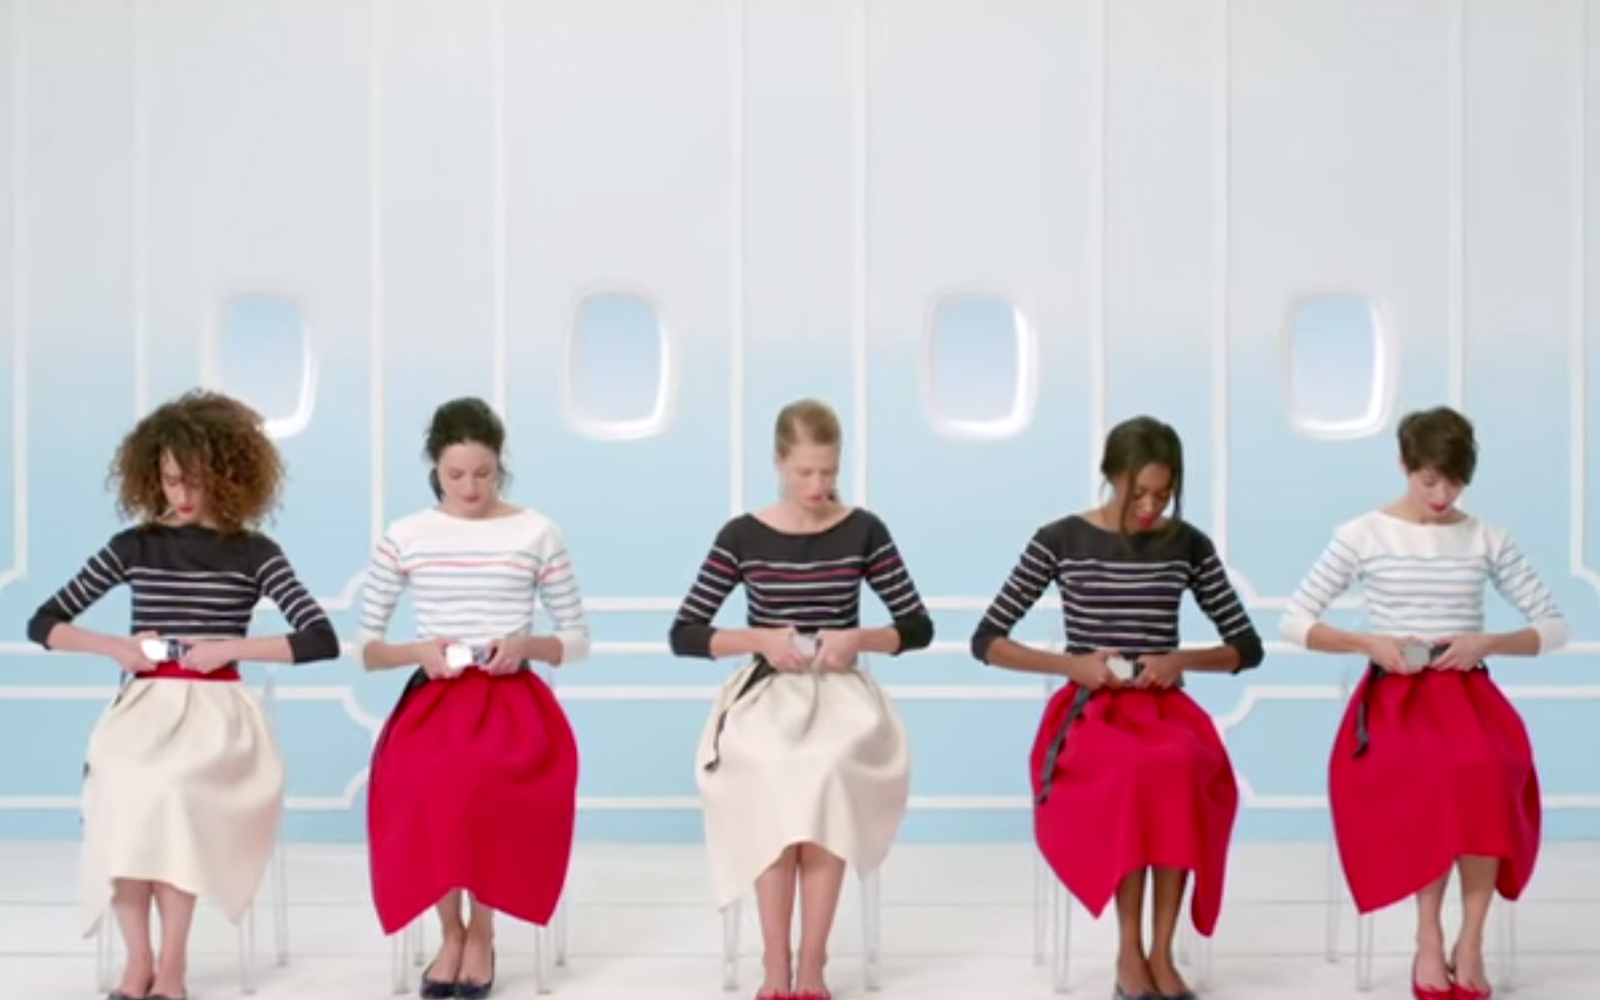 Air France's New Safety Video Features Stereotypical French Women